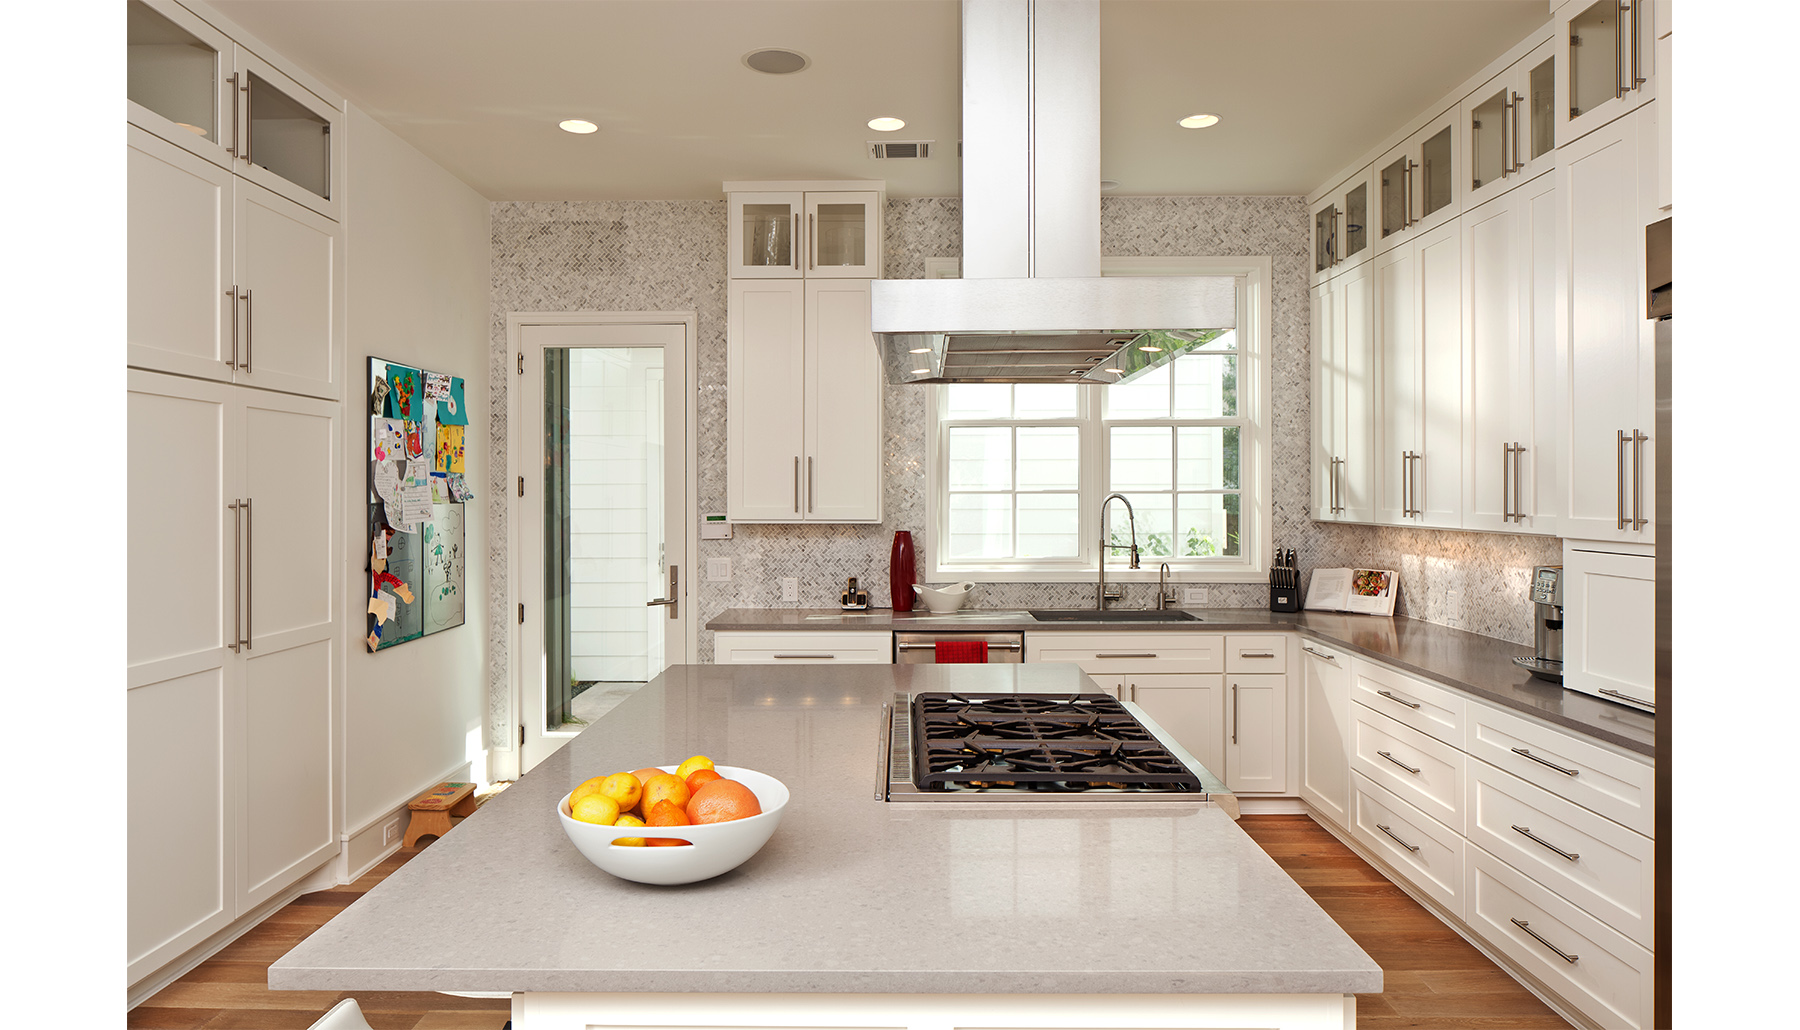 Westover Residence Kitchen